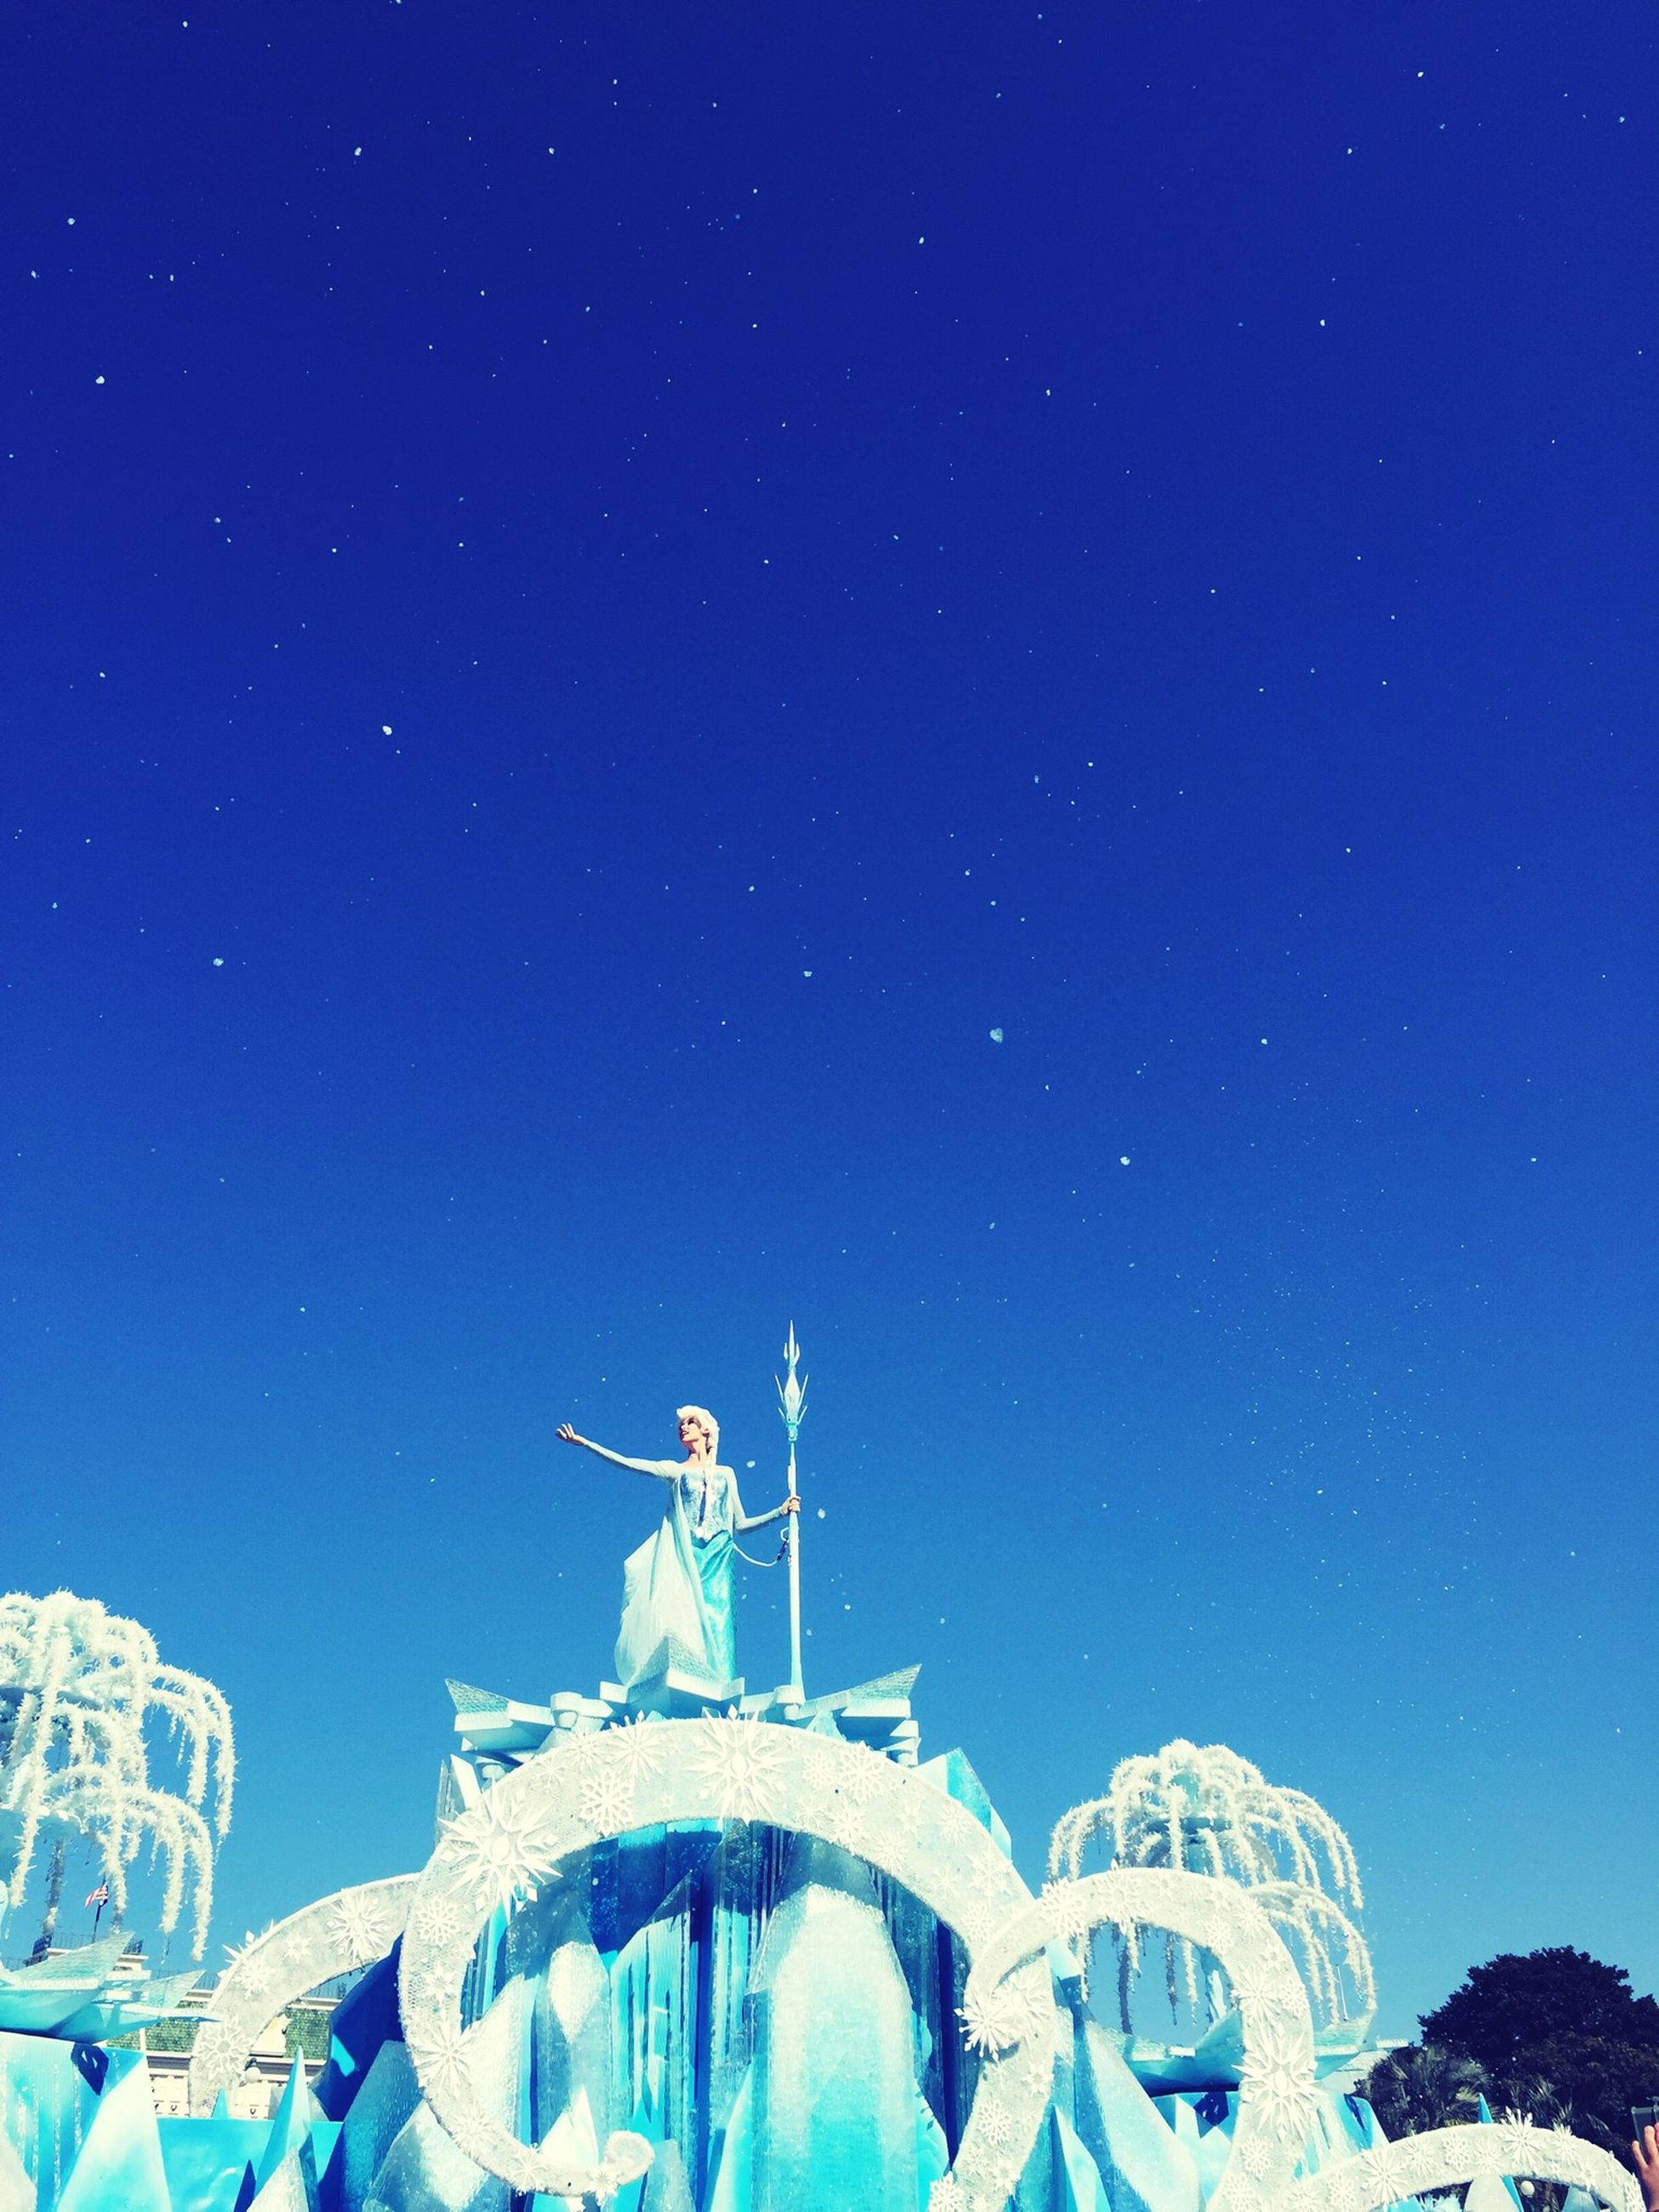 blue, clear sky, copy space, night, low angle view, winter, cold temperature, snow, illuminated, nature, outdoors, sky, no people, built structure, tranquility, beauty in nature, architecture, scenics, tranquil scene, travel